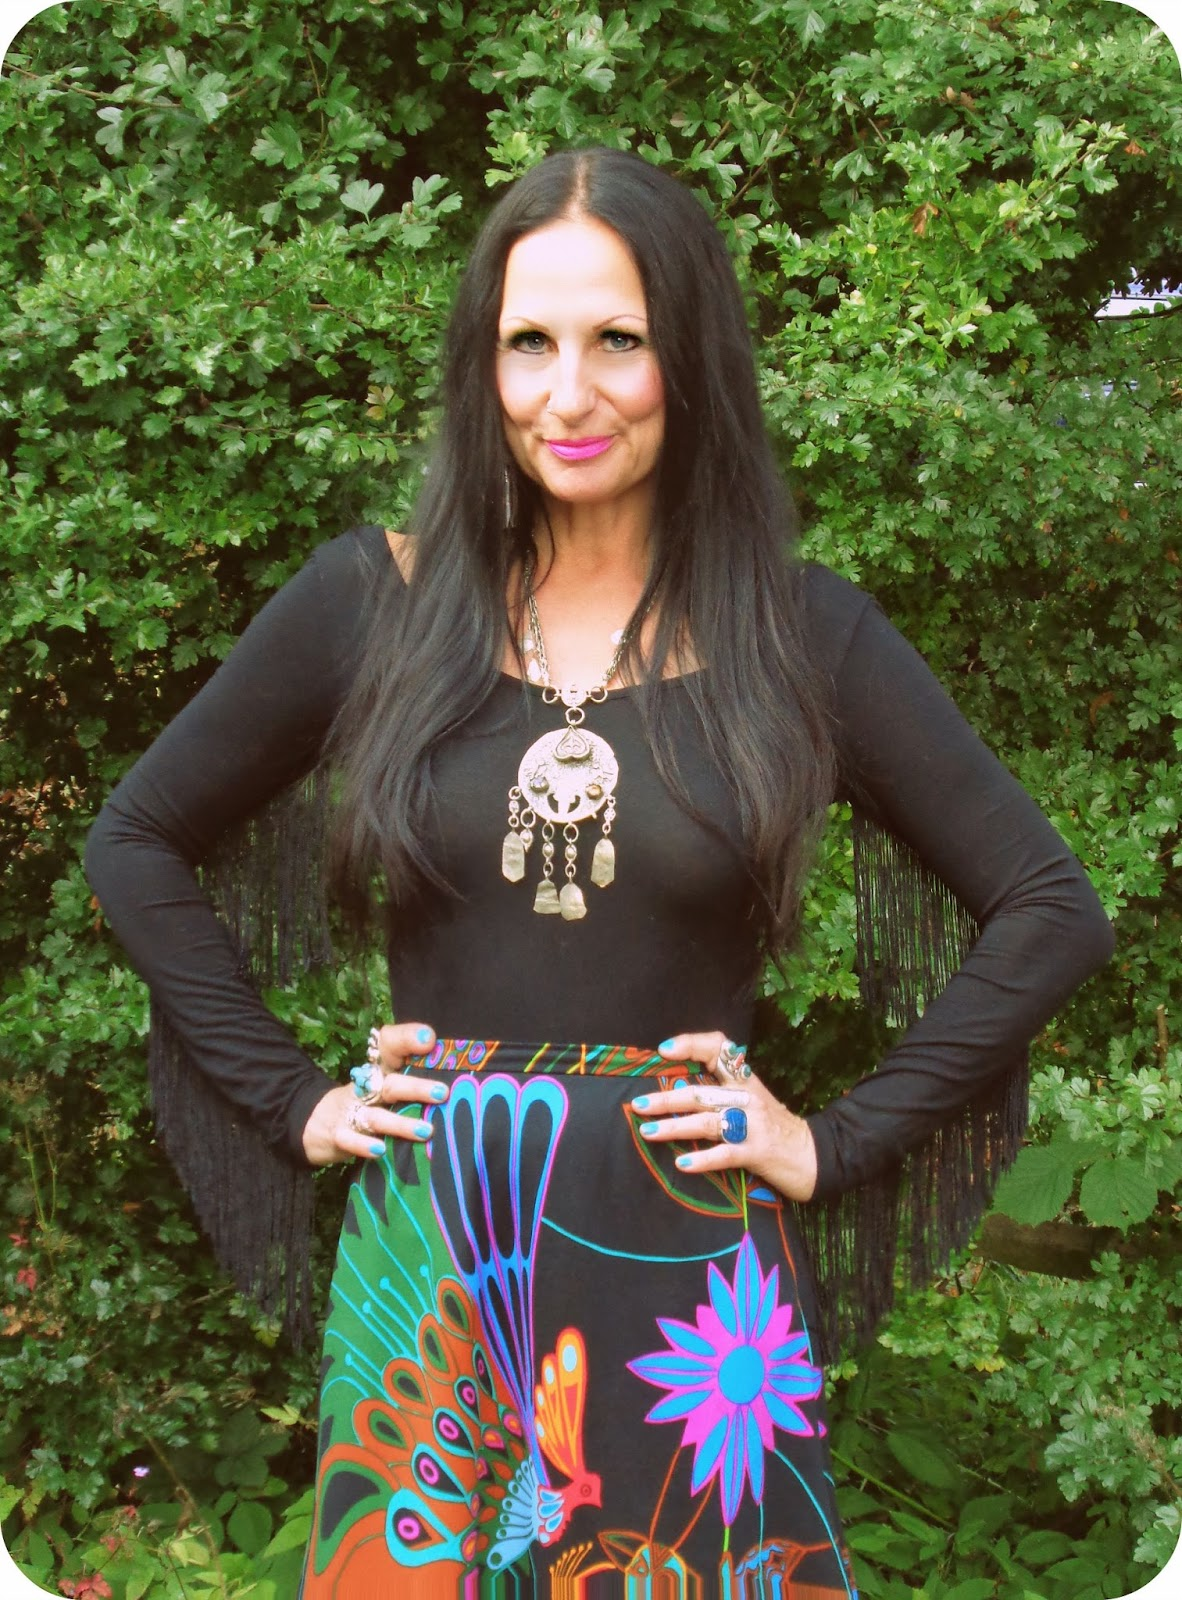 Vintage Vixen: The Psychedelic Shamanic Skirt - Charity ...